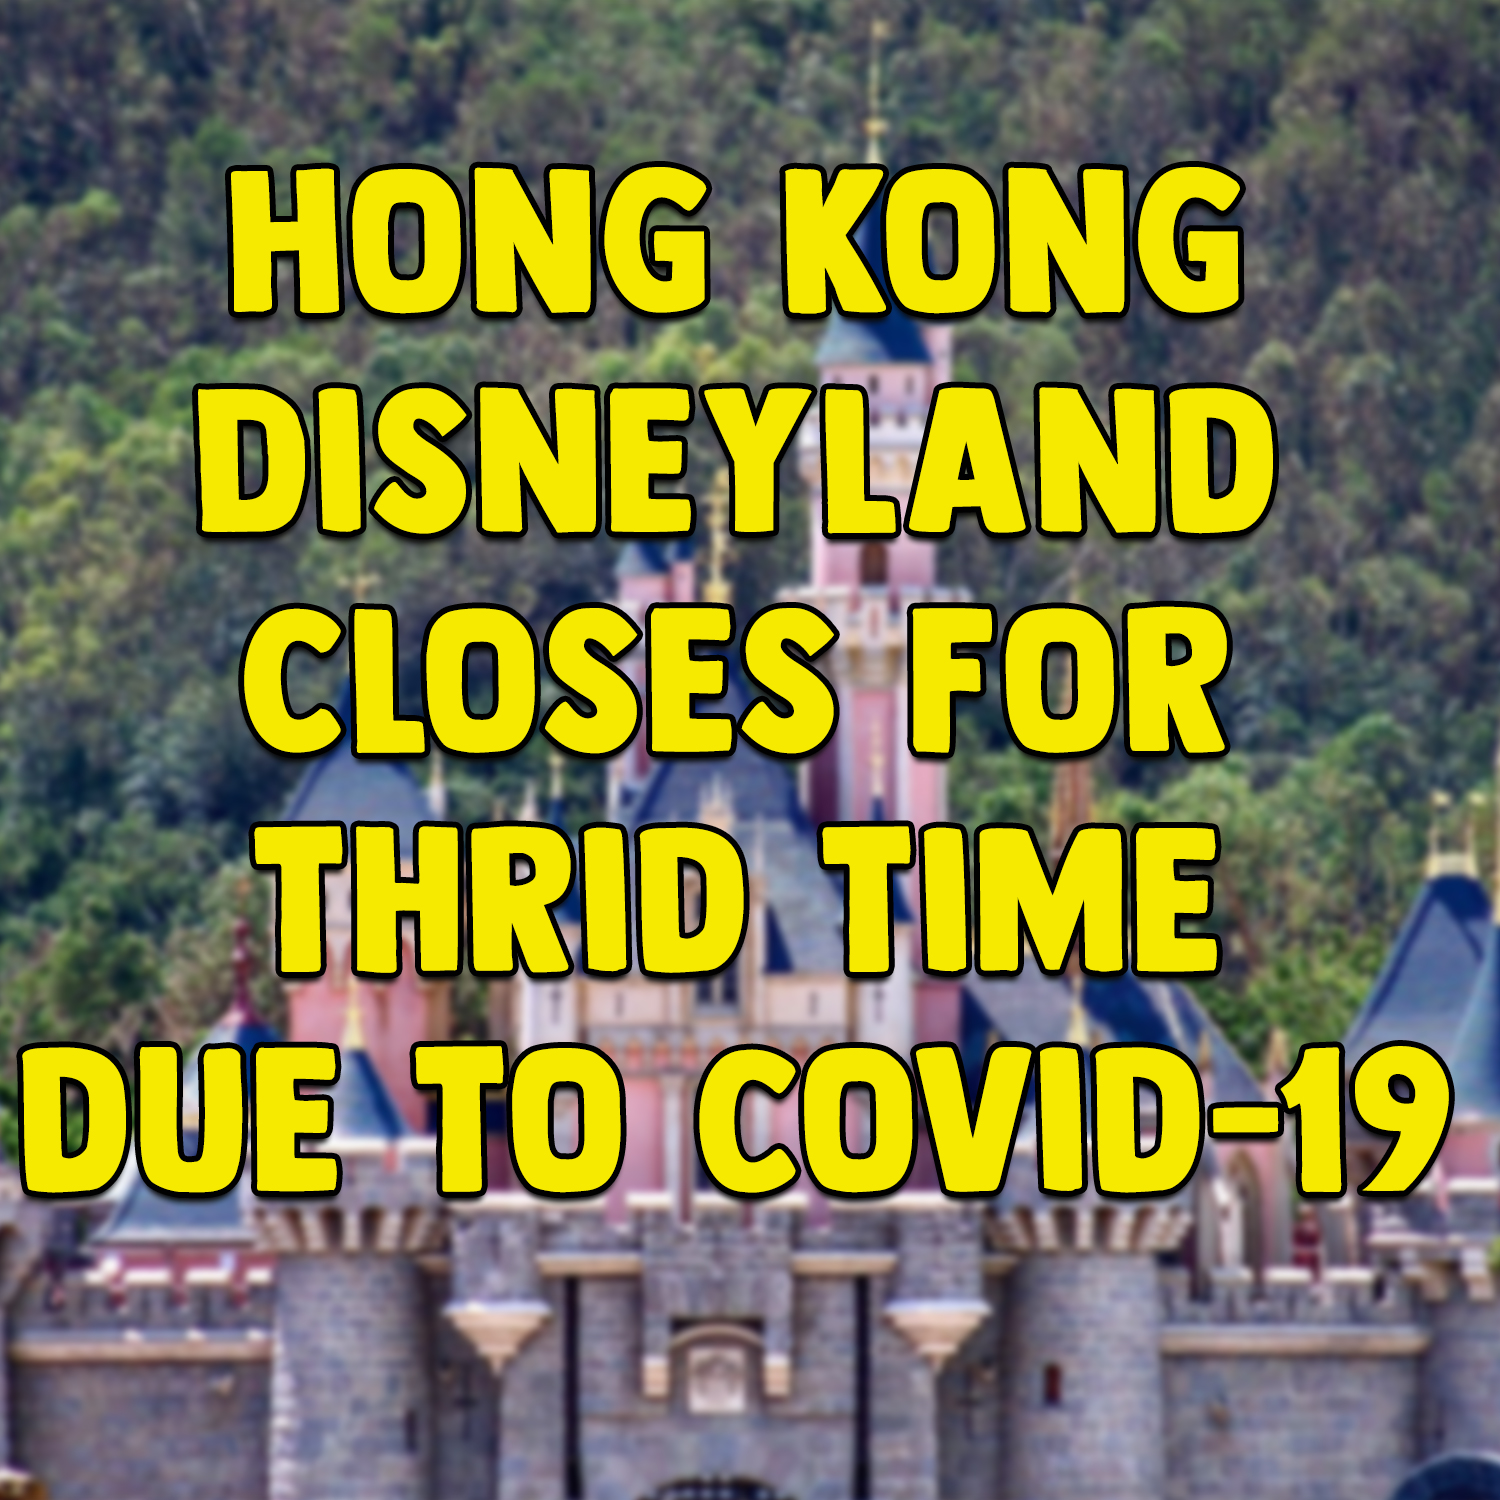 Hong Kong Disneyland Closes for thrid time due to covid-19